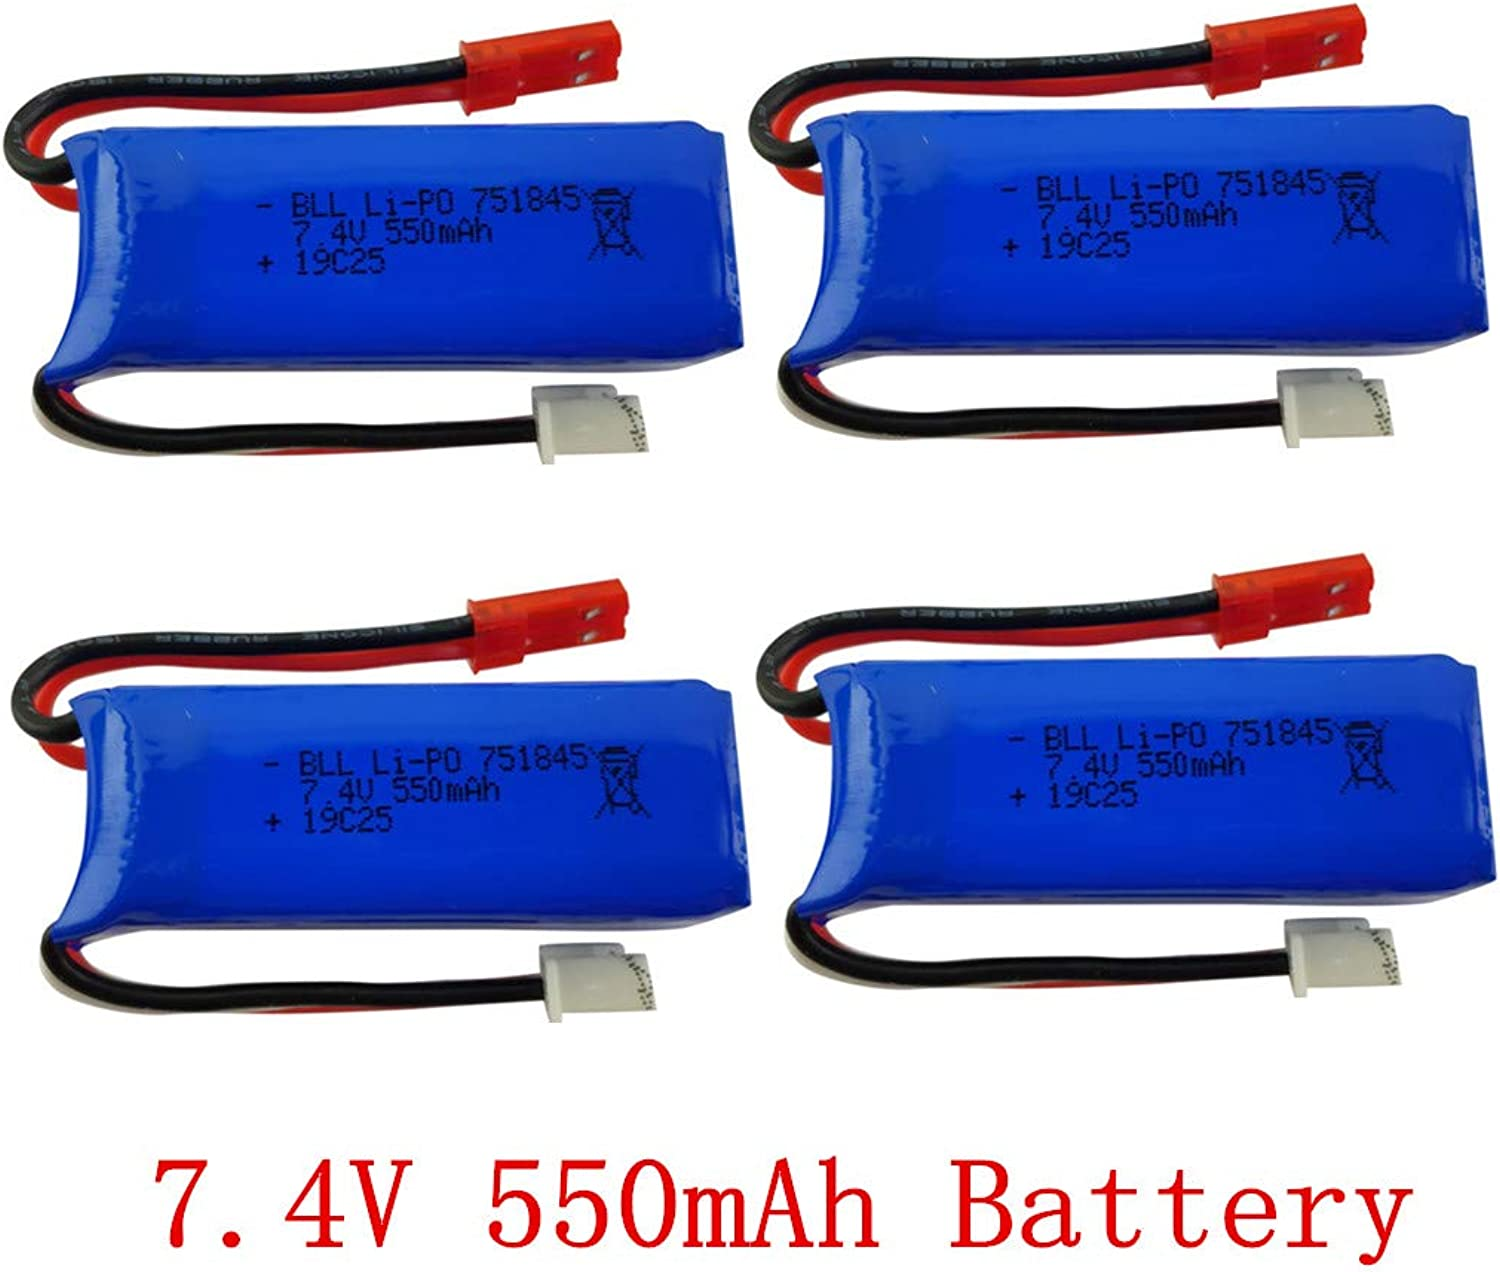 Fytoo 7.4V 550mAh Lithium Battery for wltoys K969 K979 K989 K999 P929 P939 High-Speed Remote Control car Accessories high-Rate Lithium Battery (4PCS)